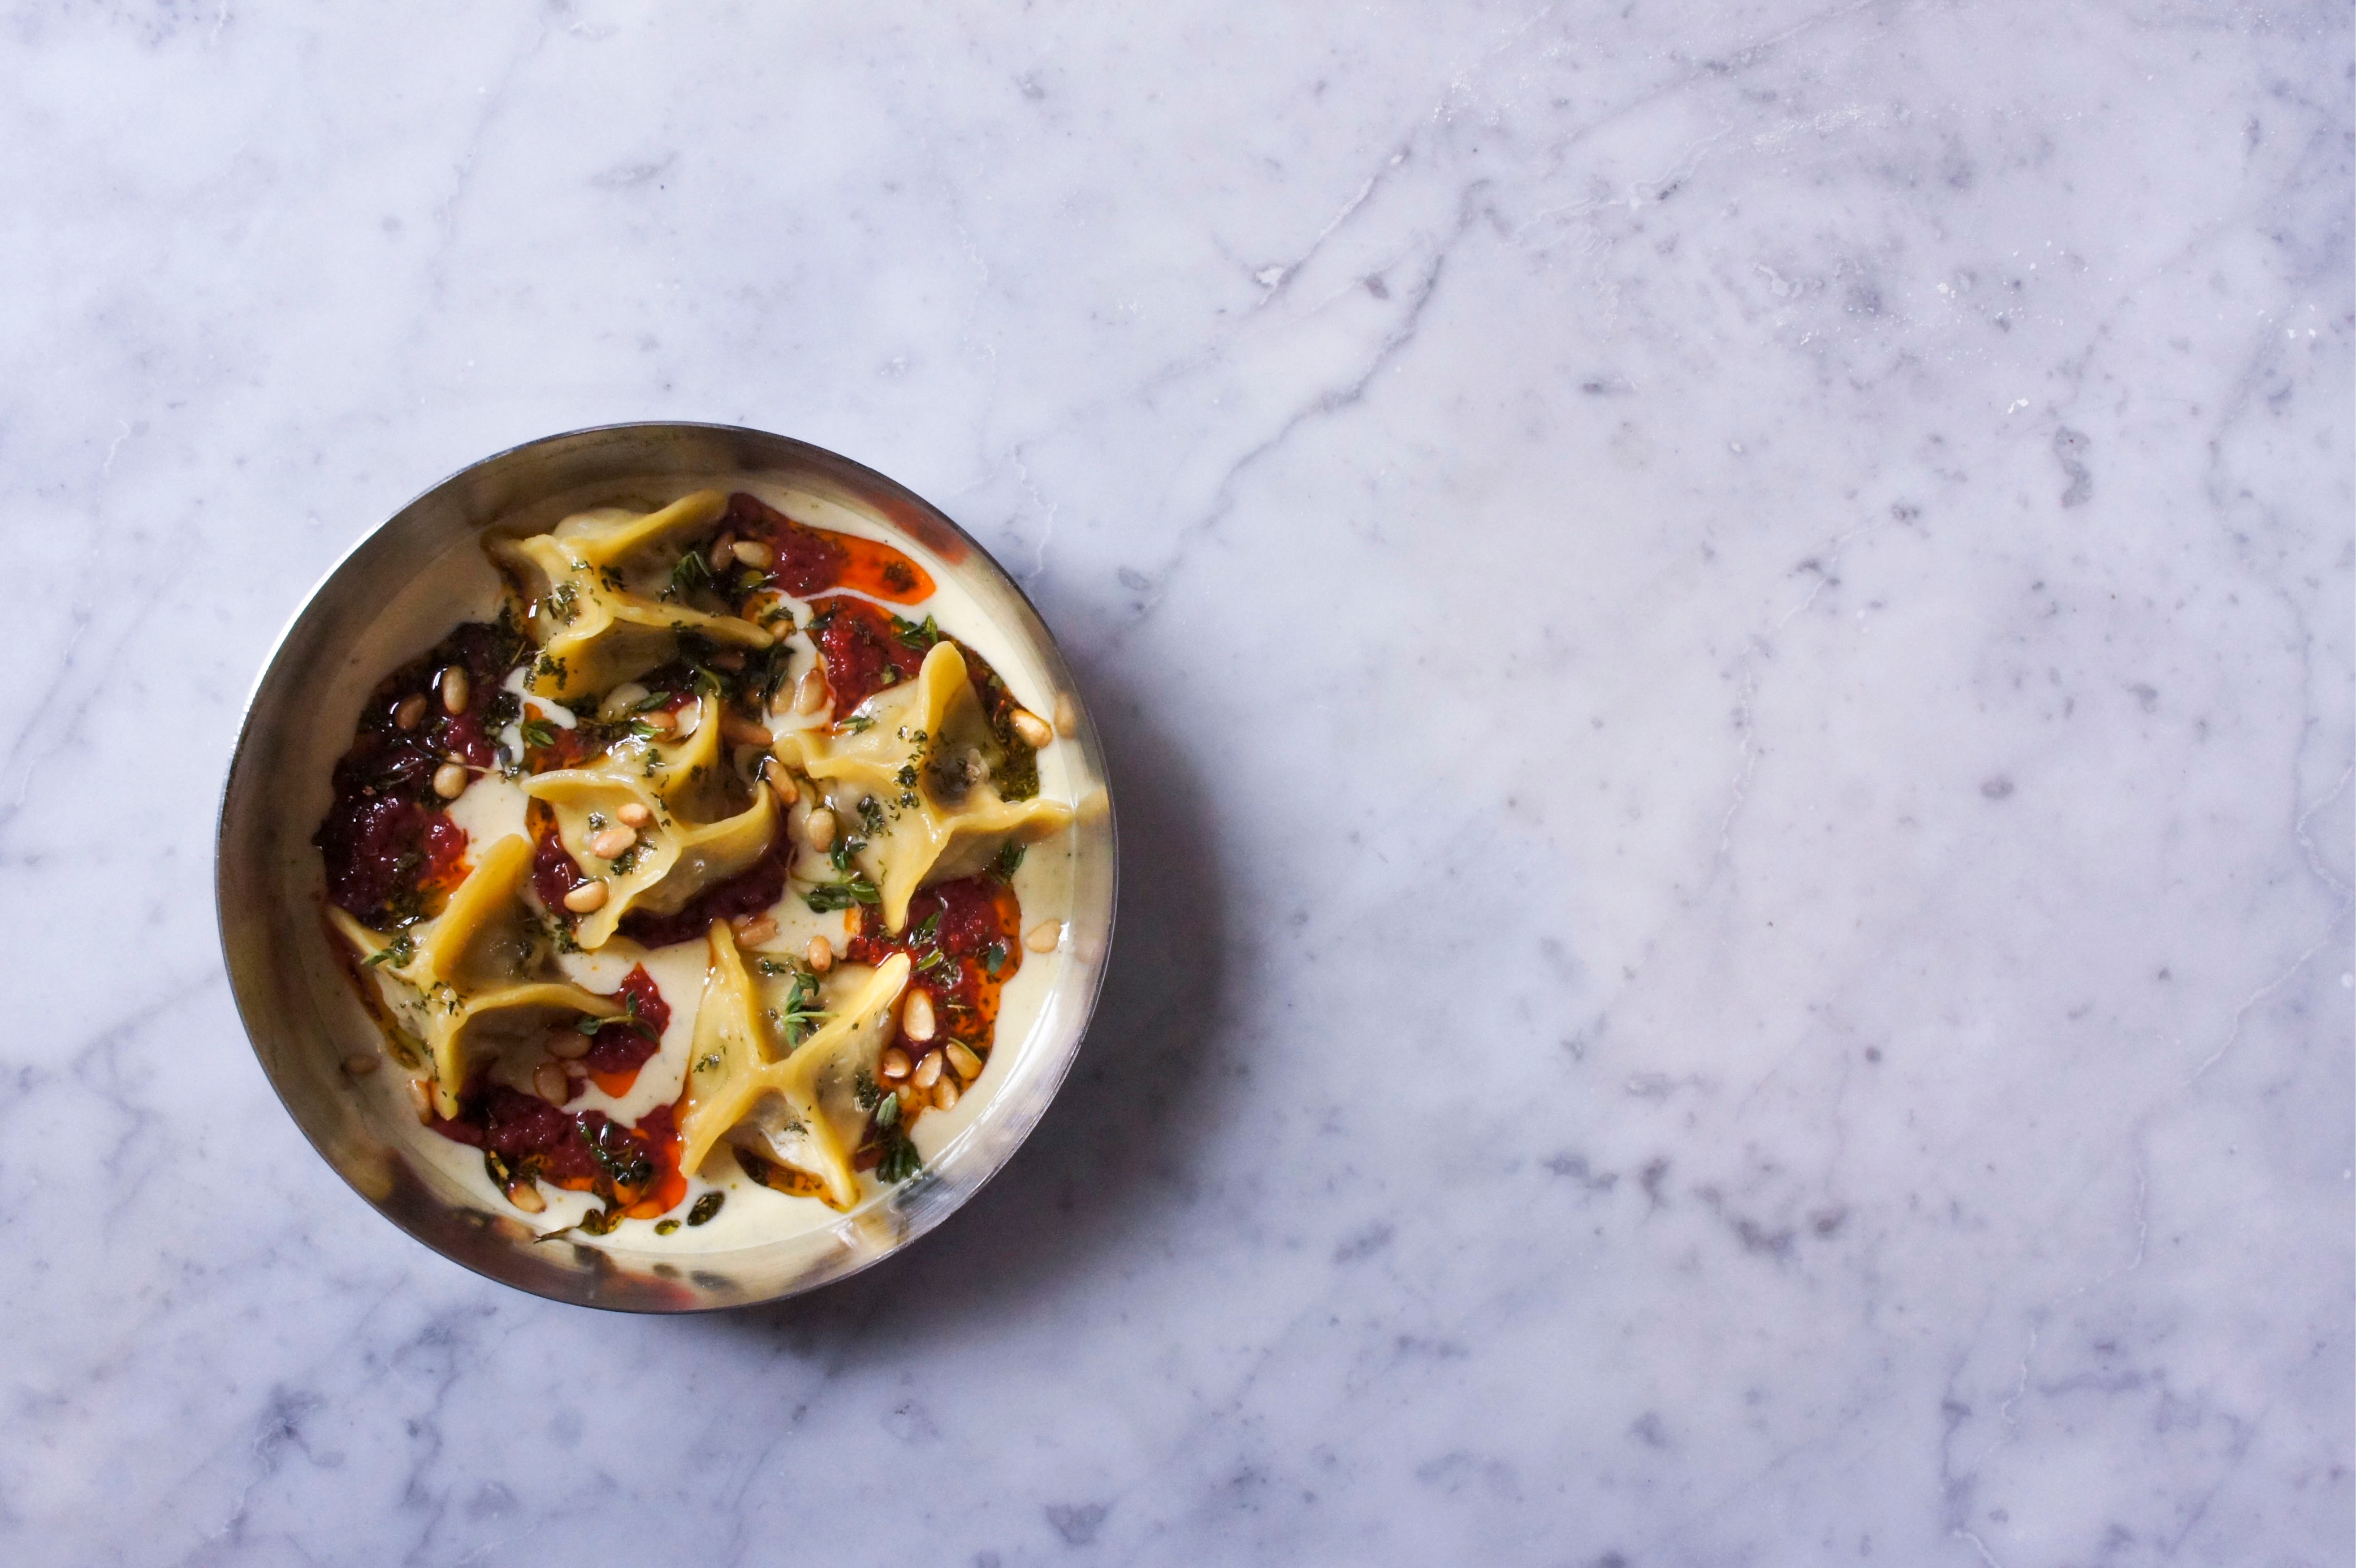 Beef and sour cherry manti, yoghurt sauce, tomato-chilli butter and pine nuts at Kyseri